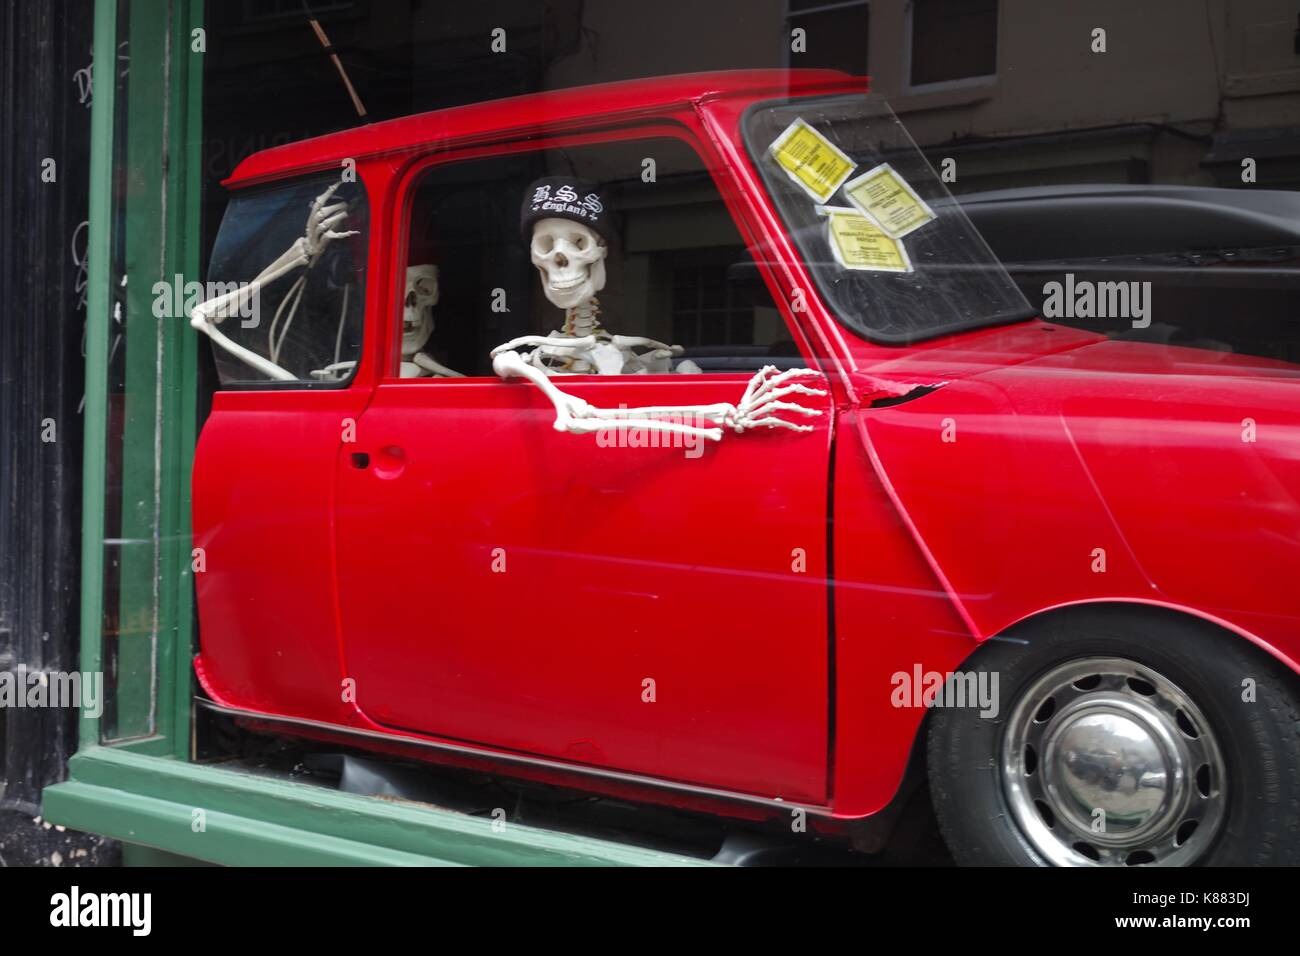 Car Accident Uk Stock Photos Images Alamy Lincoln Town Tattoo Skeletons In A Red Mock Up Parlour Window City Of Bath